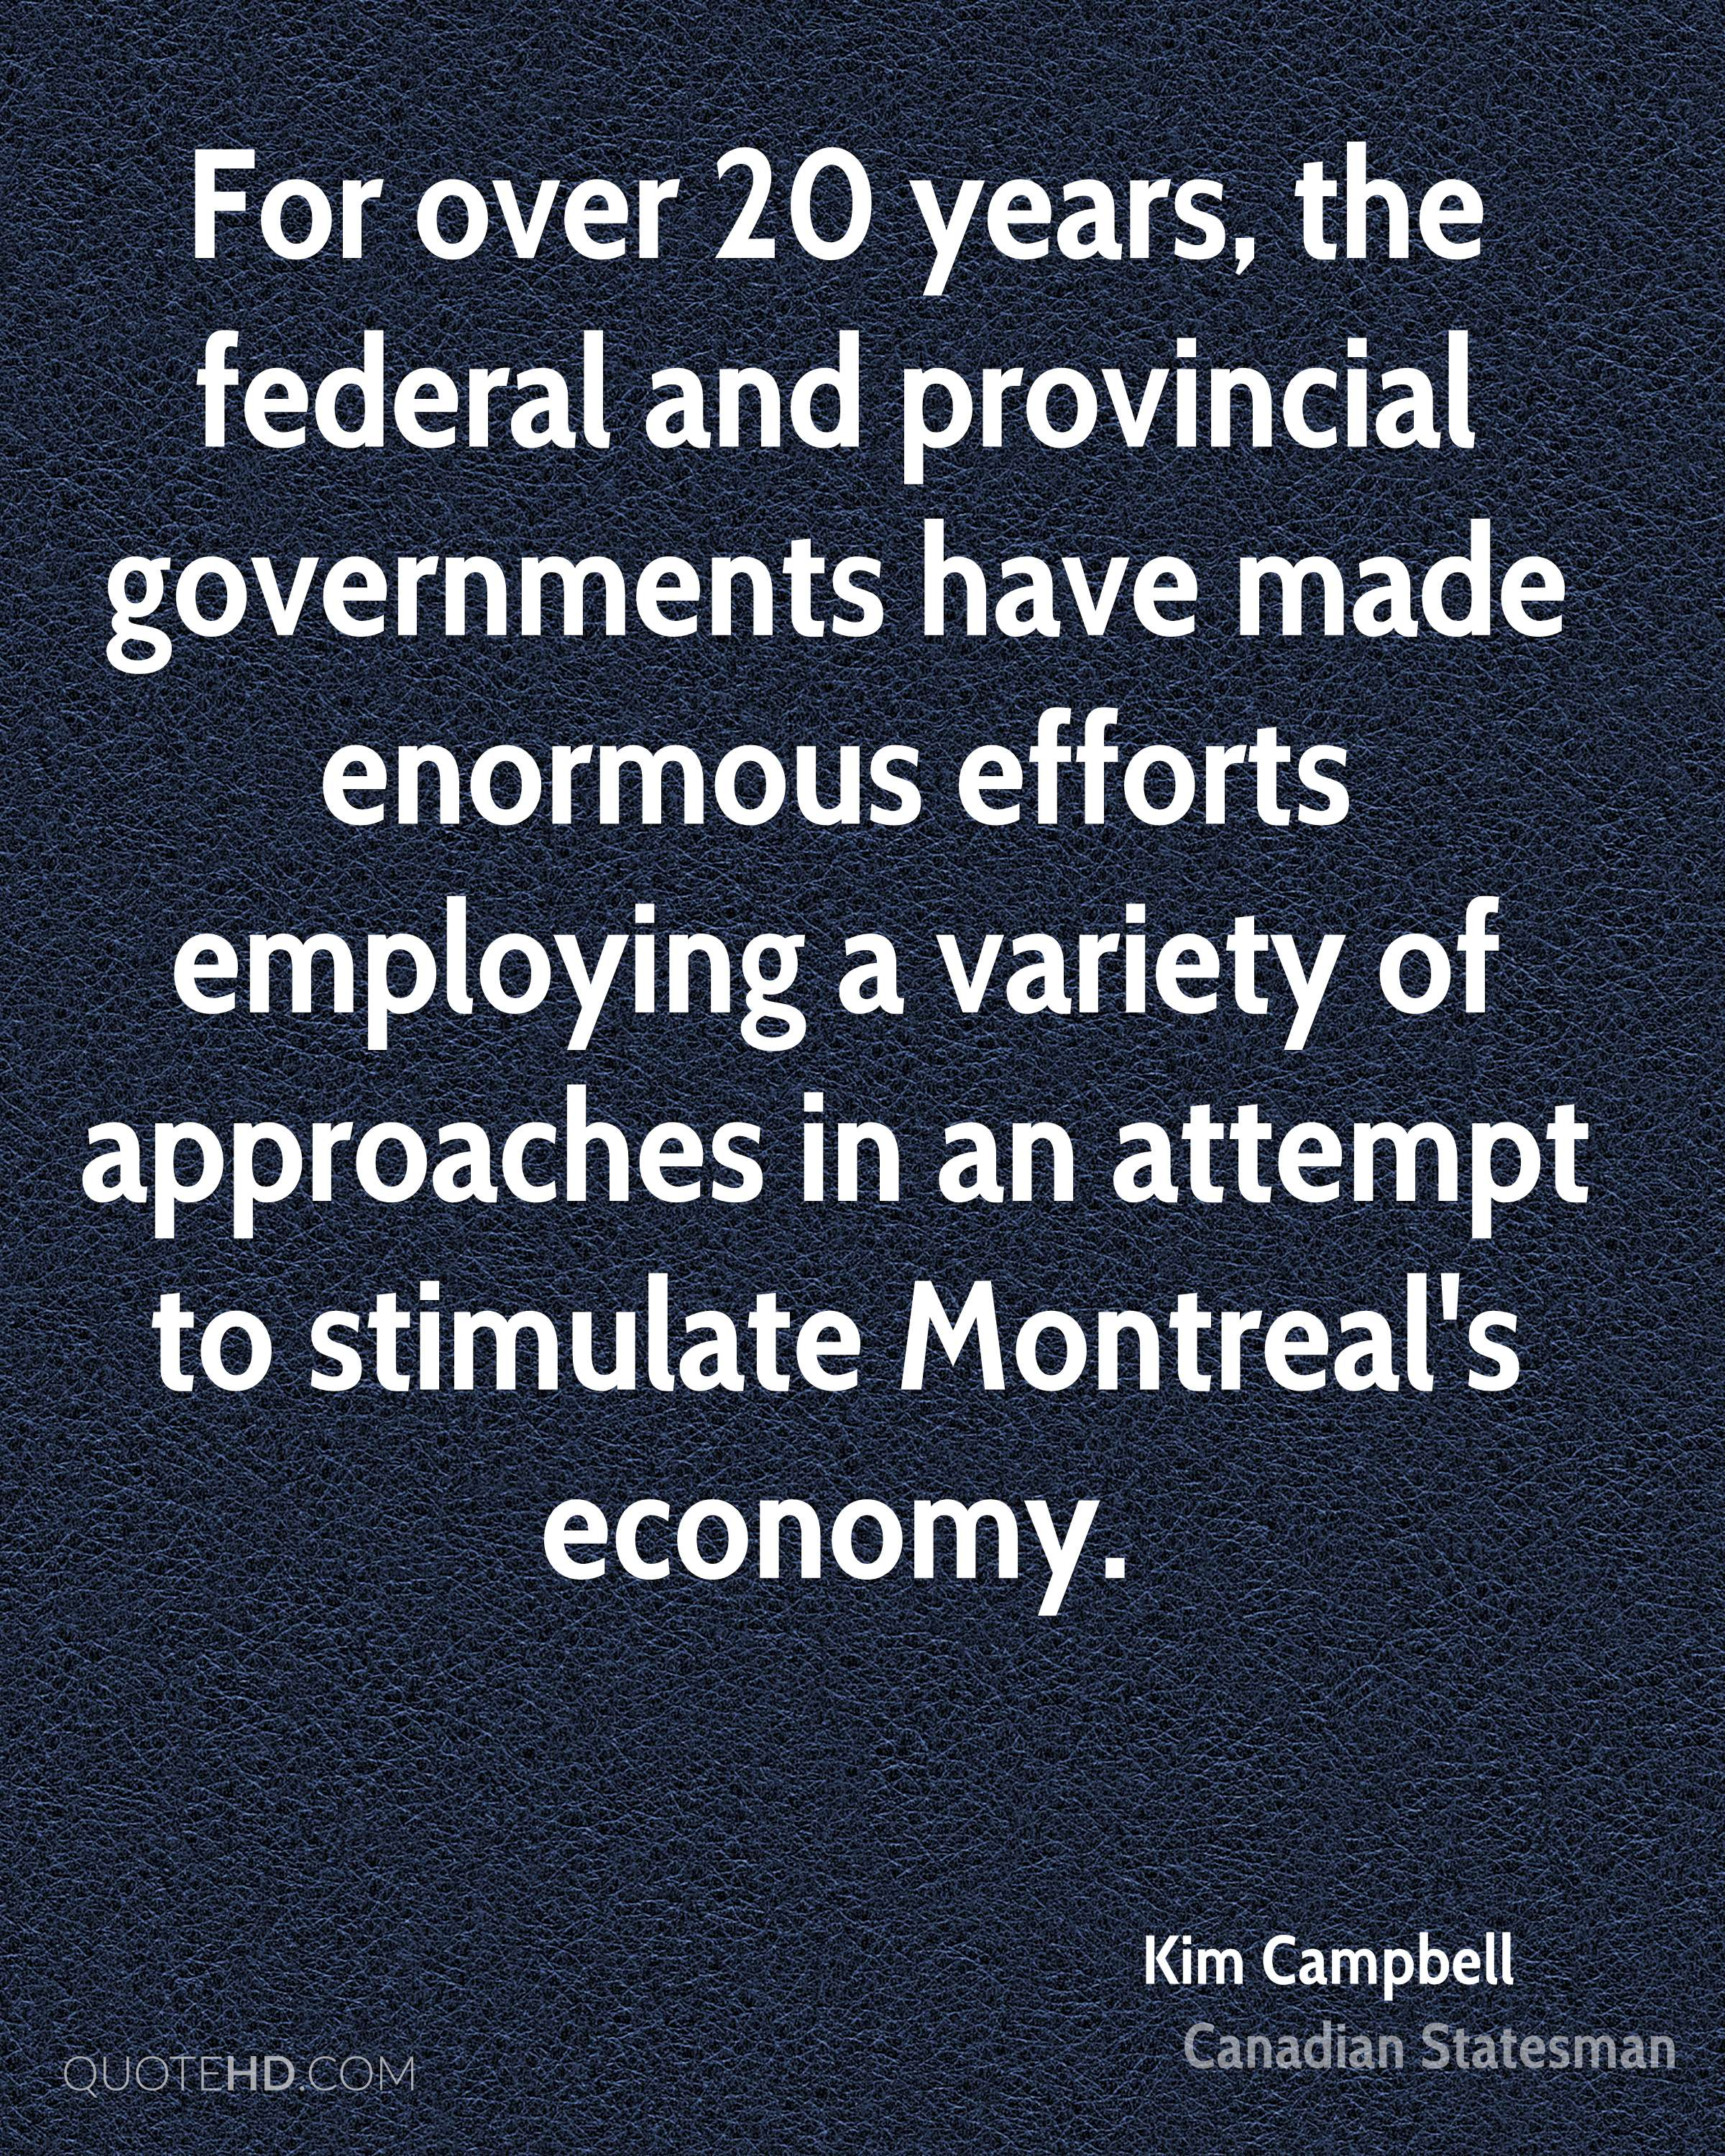 For over 20 years, the federal and provincial governments have made enormous efforts employing a variety of approaches in an attempt to stimulate Montreal's economy.